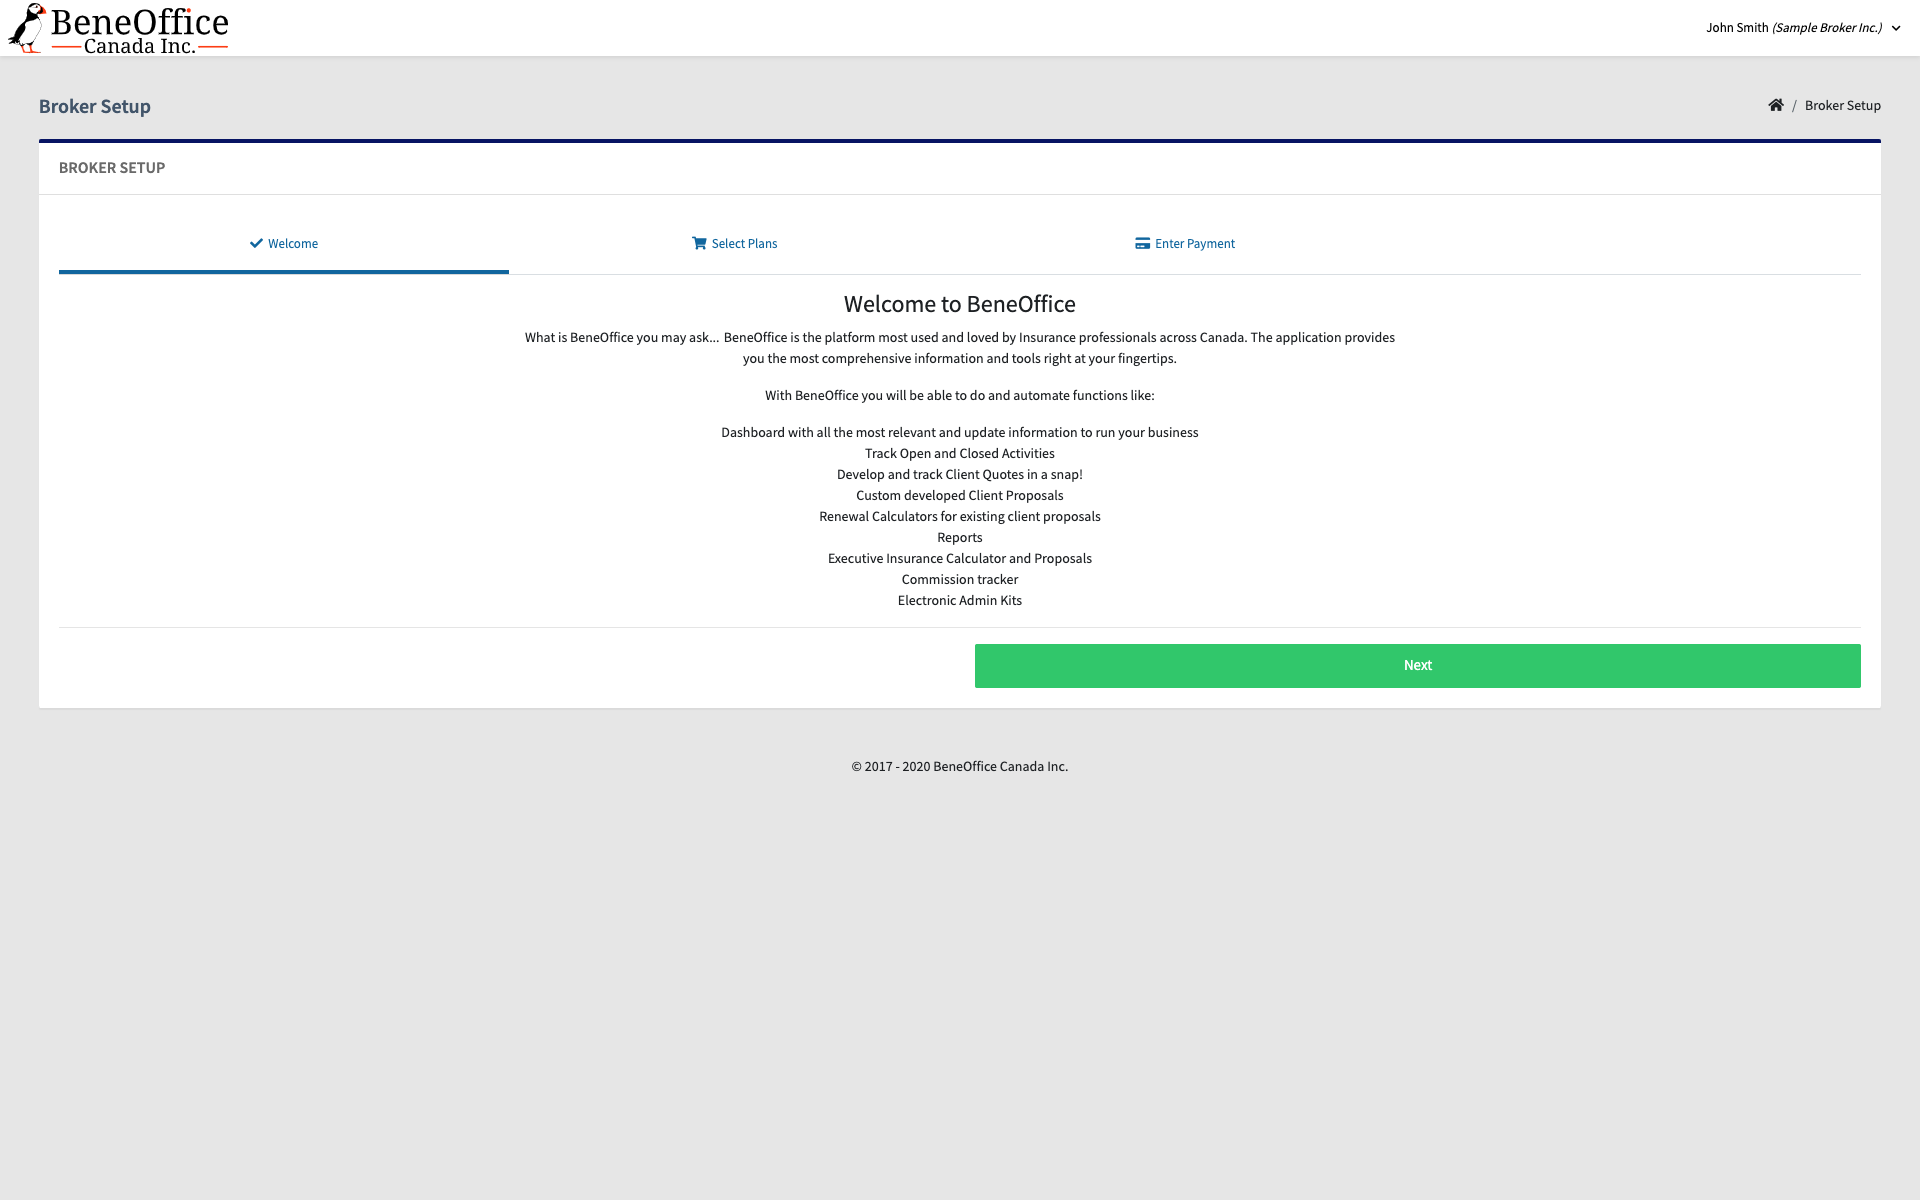 Screenshot of the welcome to BeneOffice page